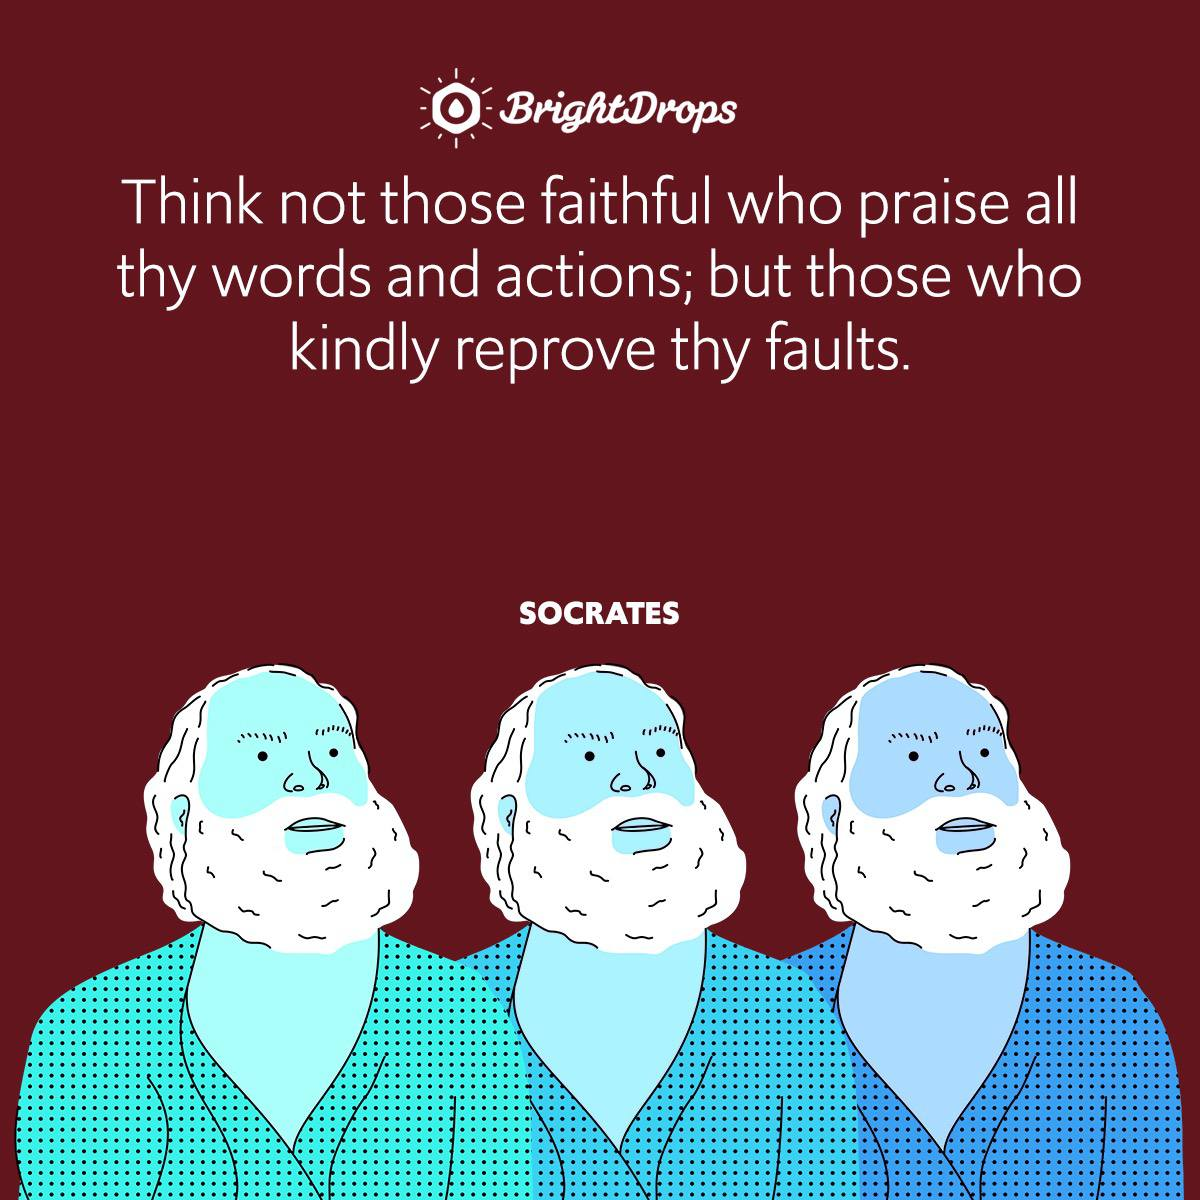 Think not those faithful who praise all thy words and actions; but those who kindly reprove thy faults.